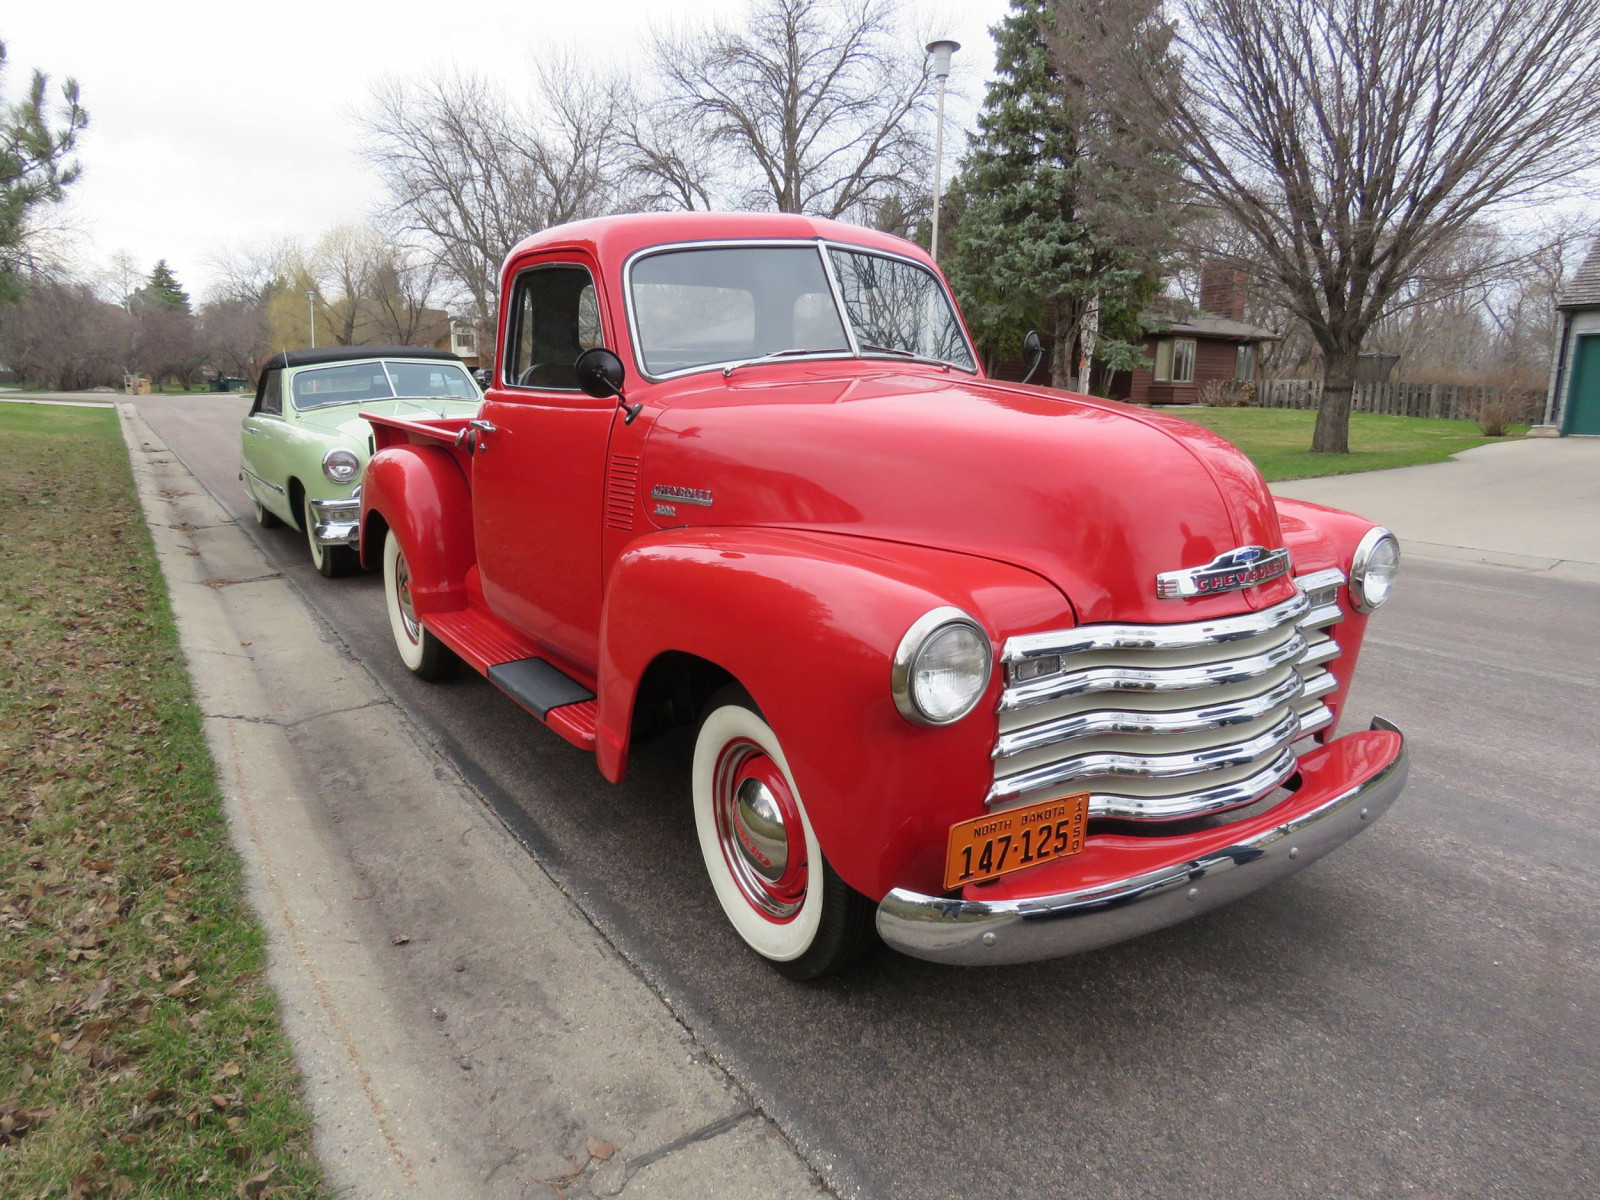 1950 Chevrolet 3100 5 window Pickup - Image 3